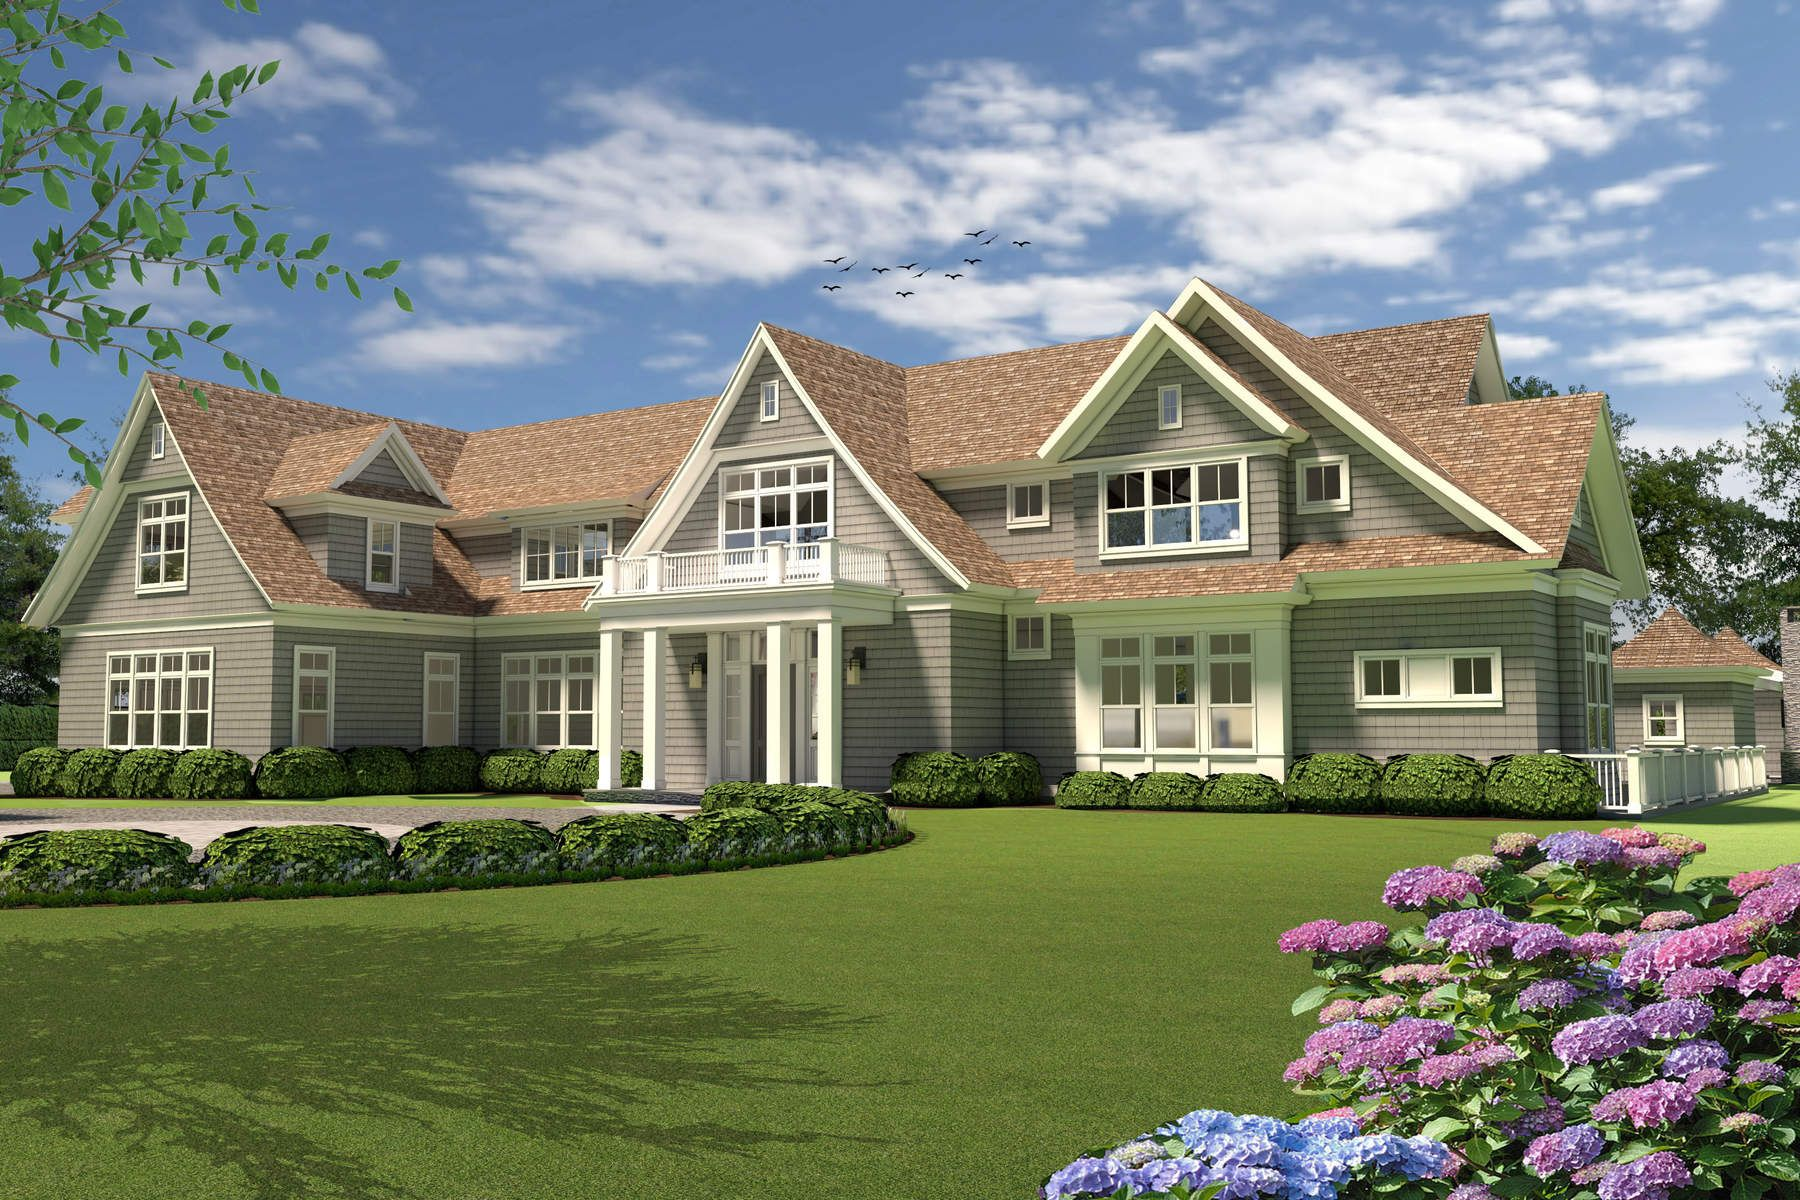 Land for Active at New Construction with Pool & 3-Car Garge 593 Flying Point Road Southampton, New York 11968 United States